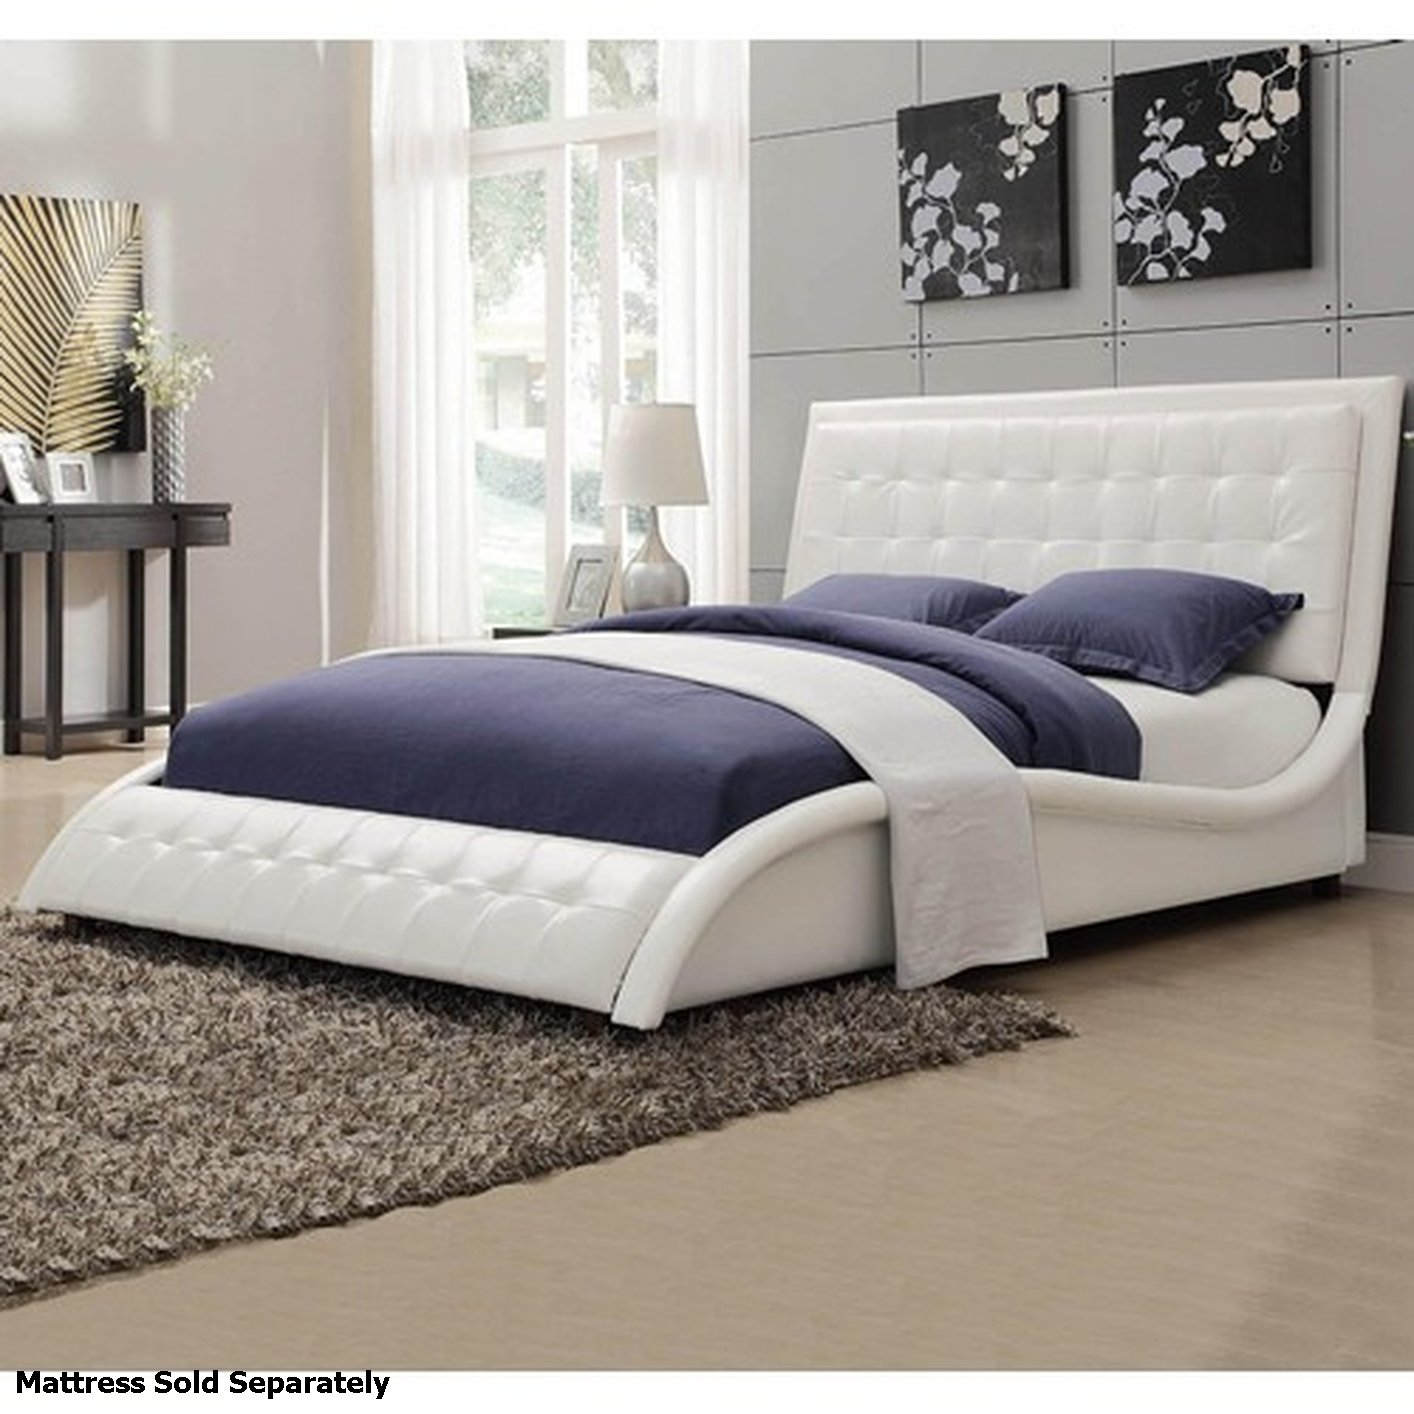 Queen Size Bed: Coaster Tully 300372Q White Queen Size Leather Bed